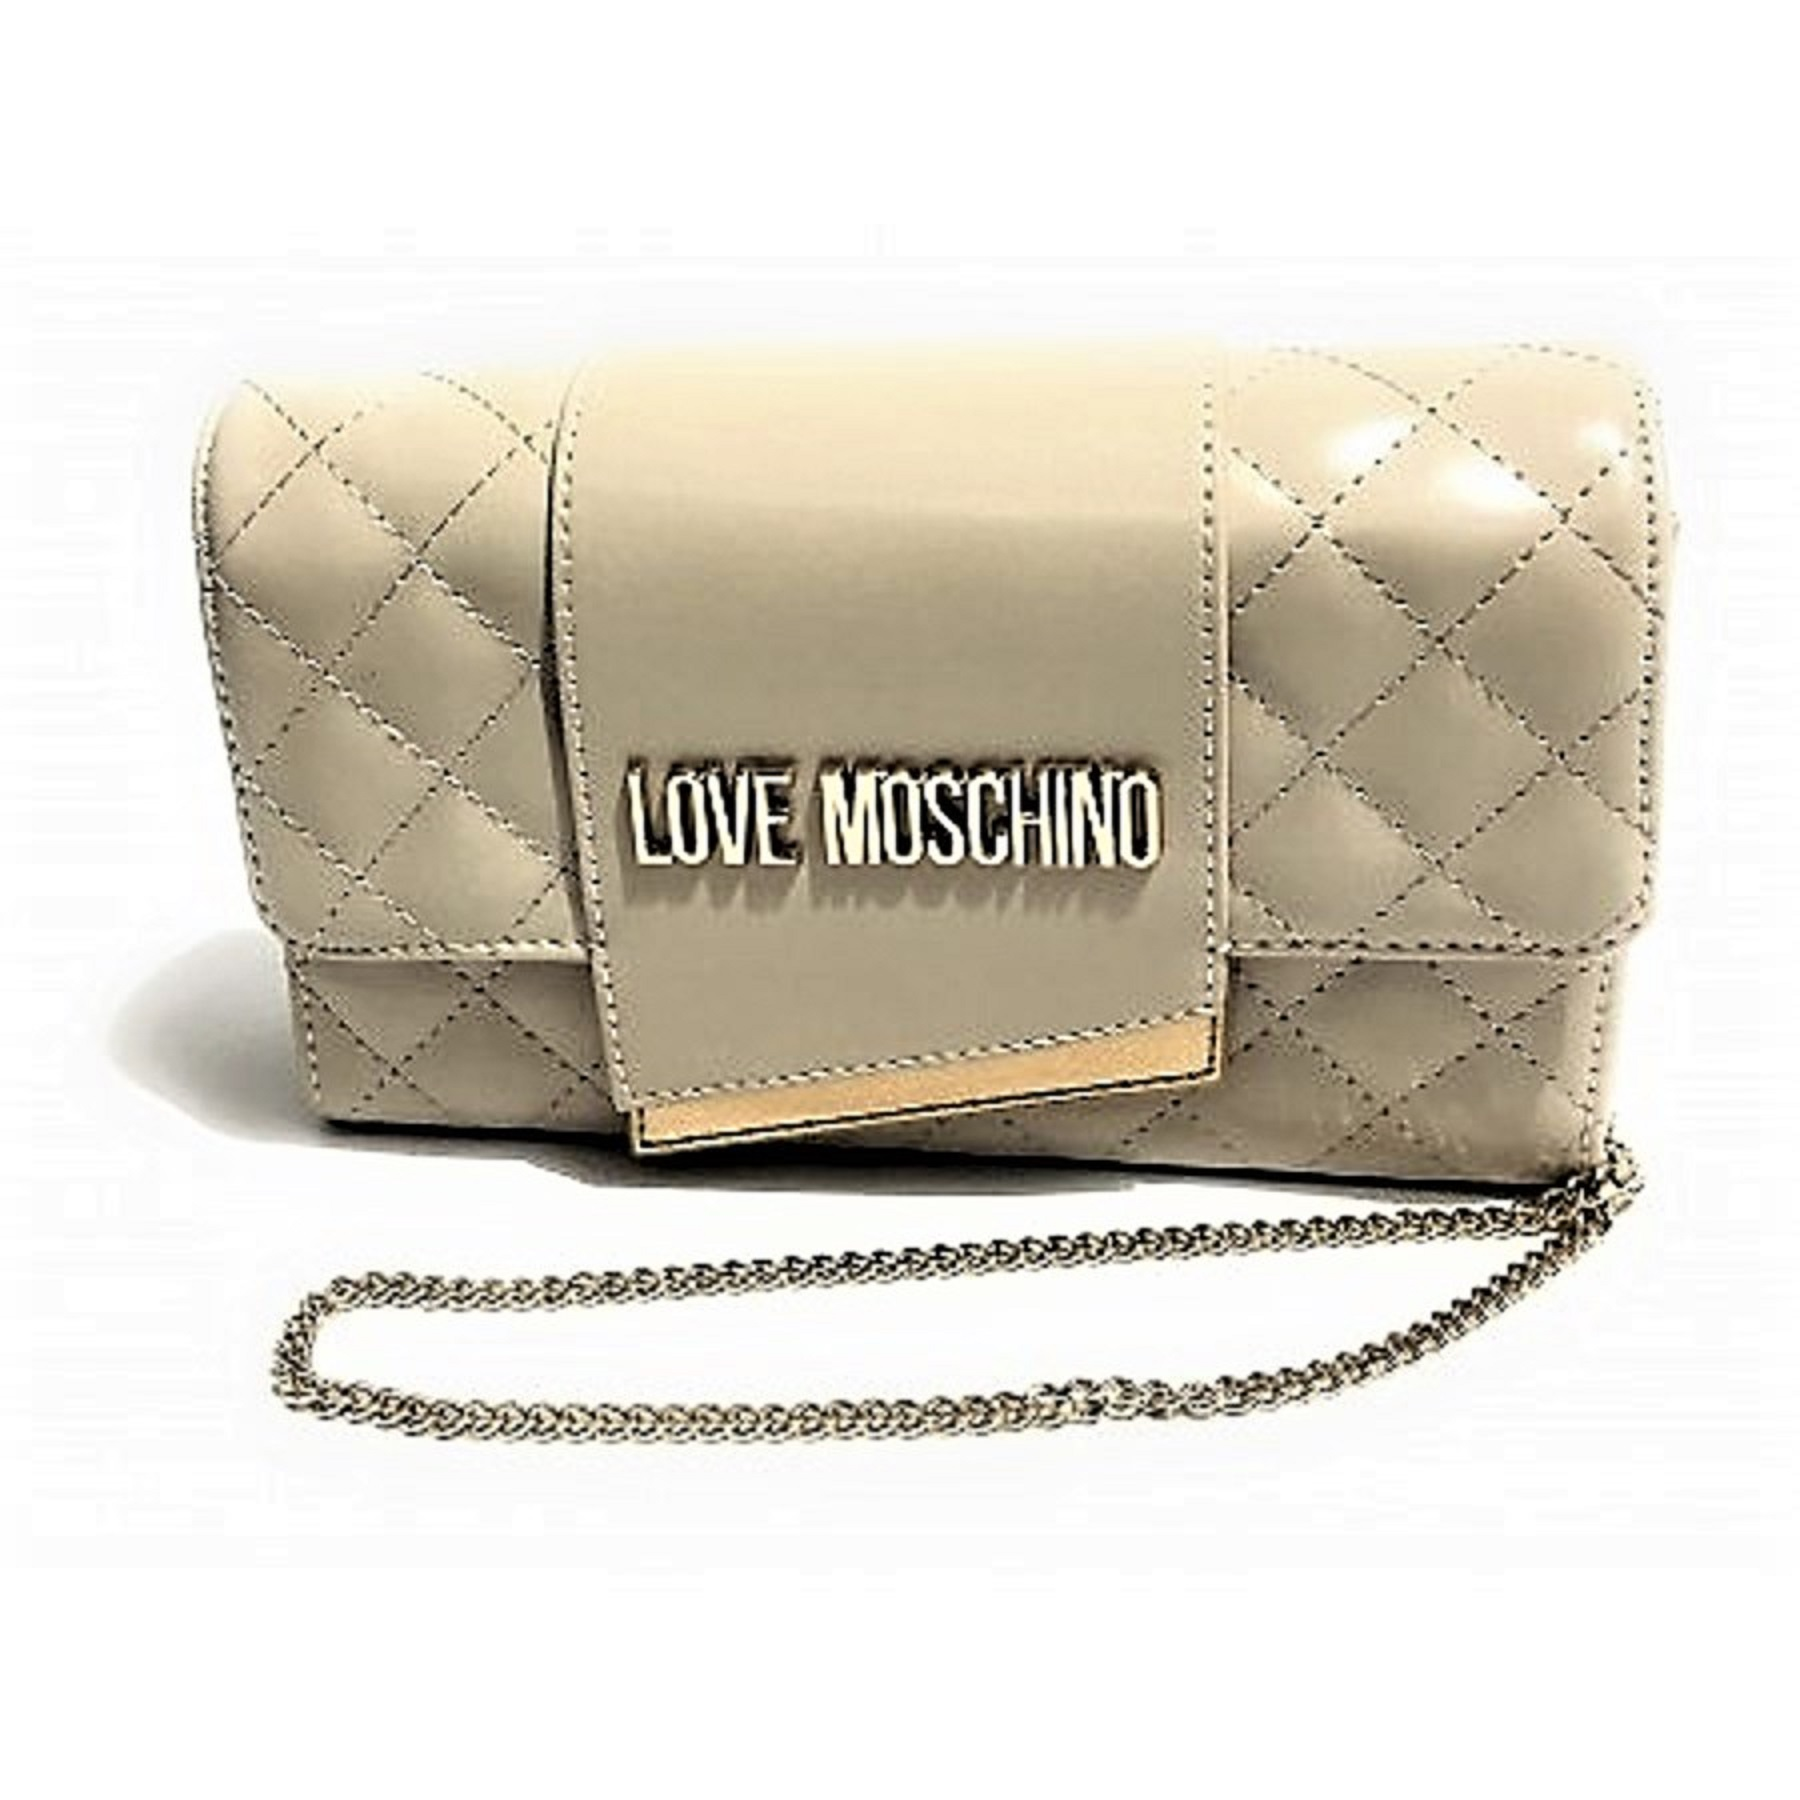 LOVE MOSCHINO BORSA DONNA QUILTED NAPPA PU AVORIO JC4295PP07KA0110 TRACOLLINA